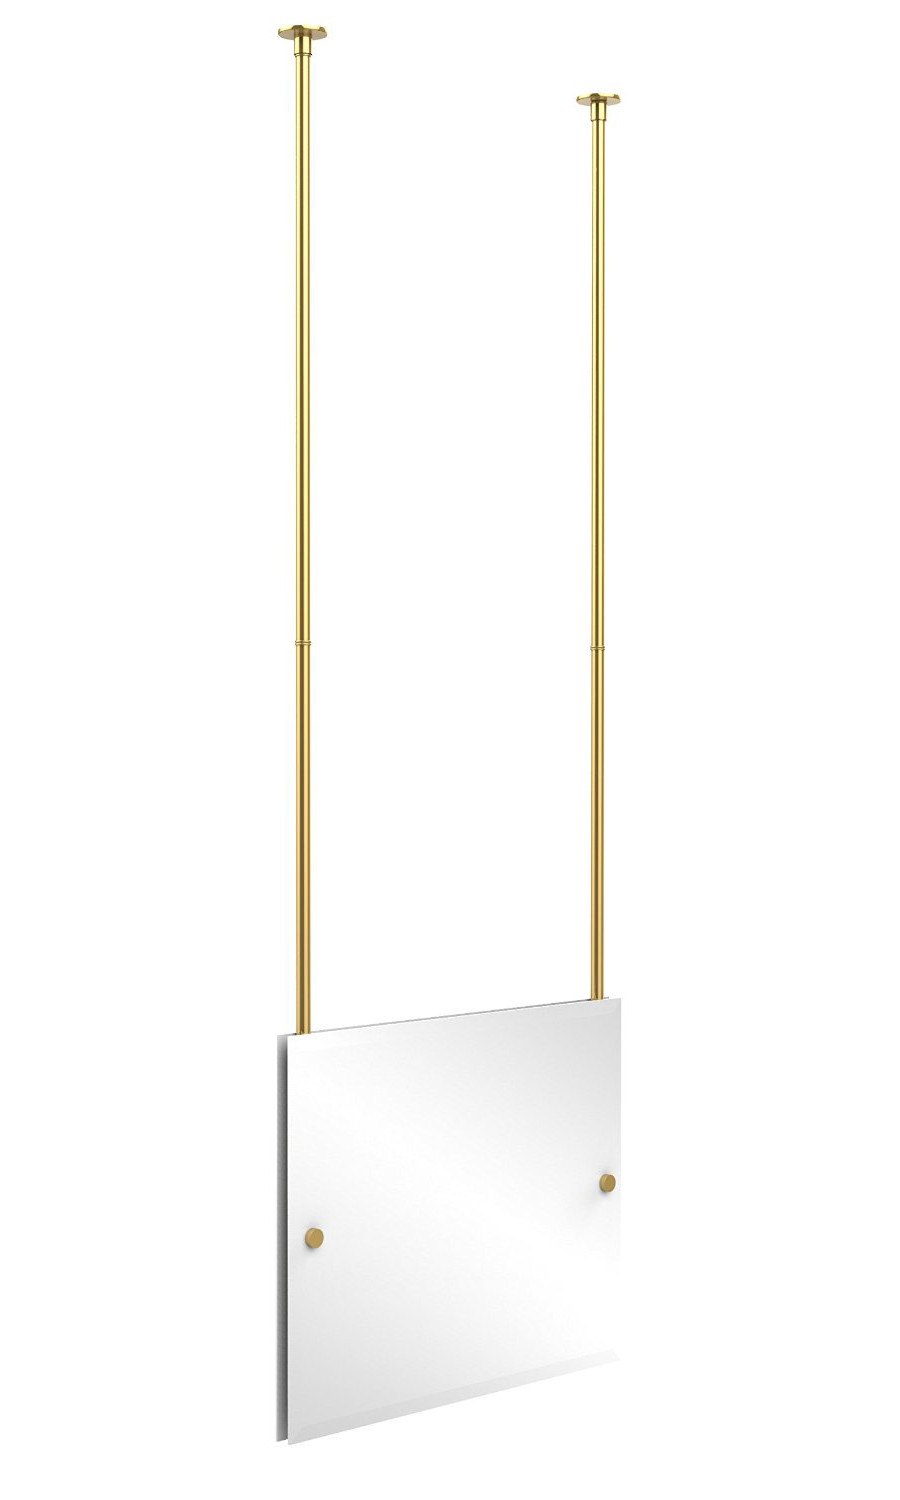 Allied Brass CH-93-PB Rectangle Ceiling-hung Mirror in Polished Brass